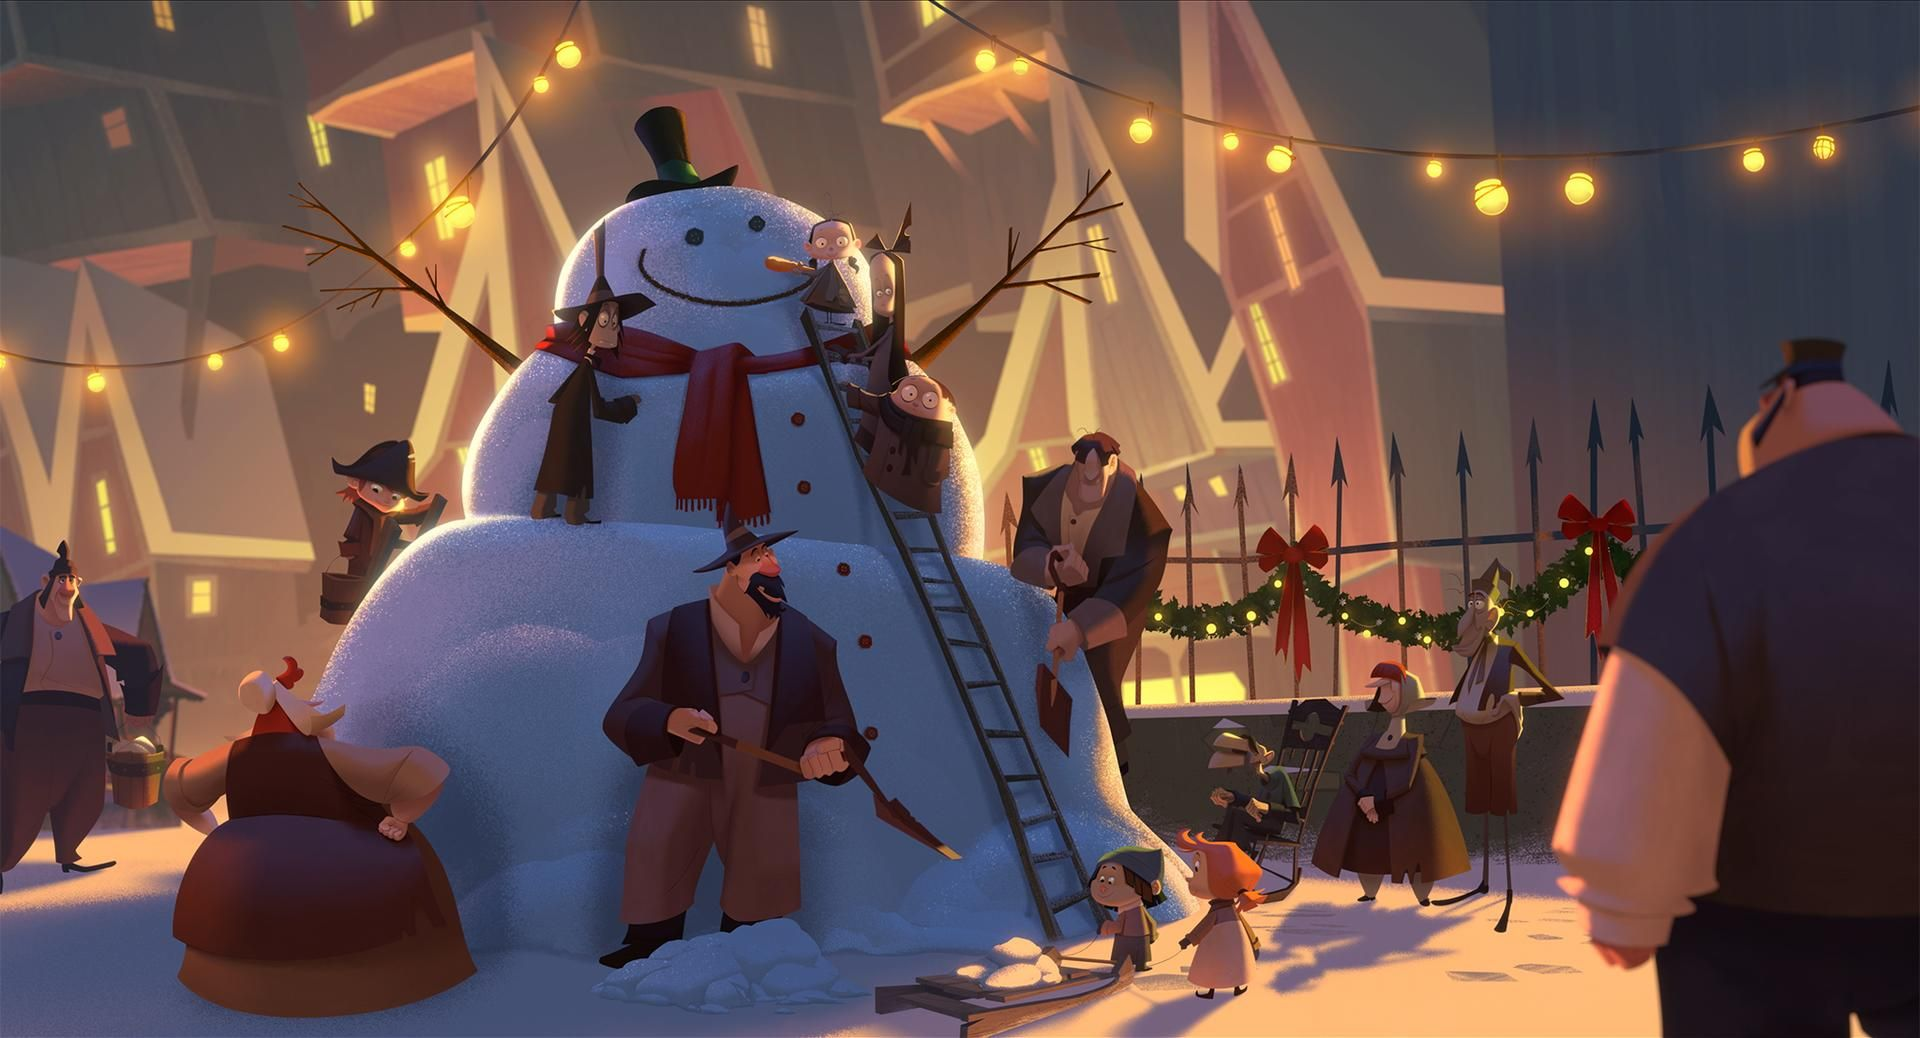 It S Beginning To Look A Lot Like Christmas On Netflix Kids Christmas Movies Christmas Movies Netflix Christmas Movies